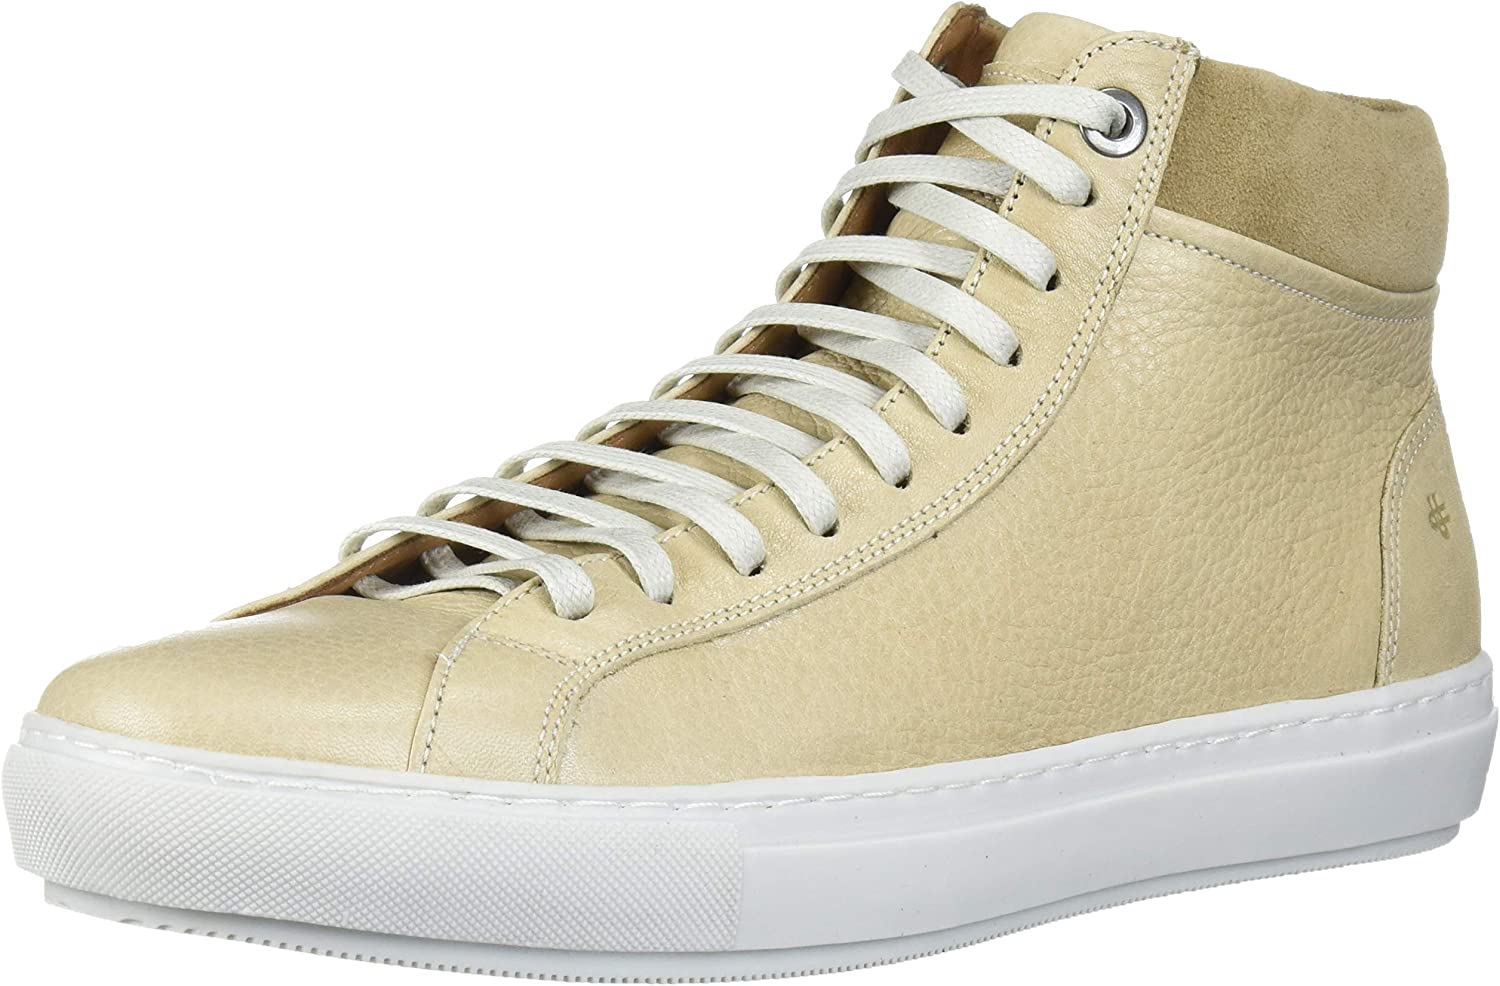 Brothers United Men's Leather Luxury Lace Up Fashion New Nashville-Davidson Mall Shipping Free Sneaker